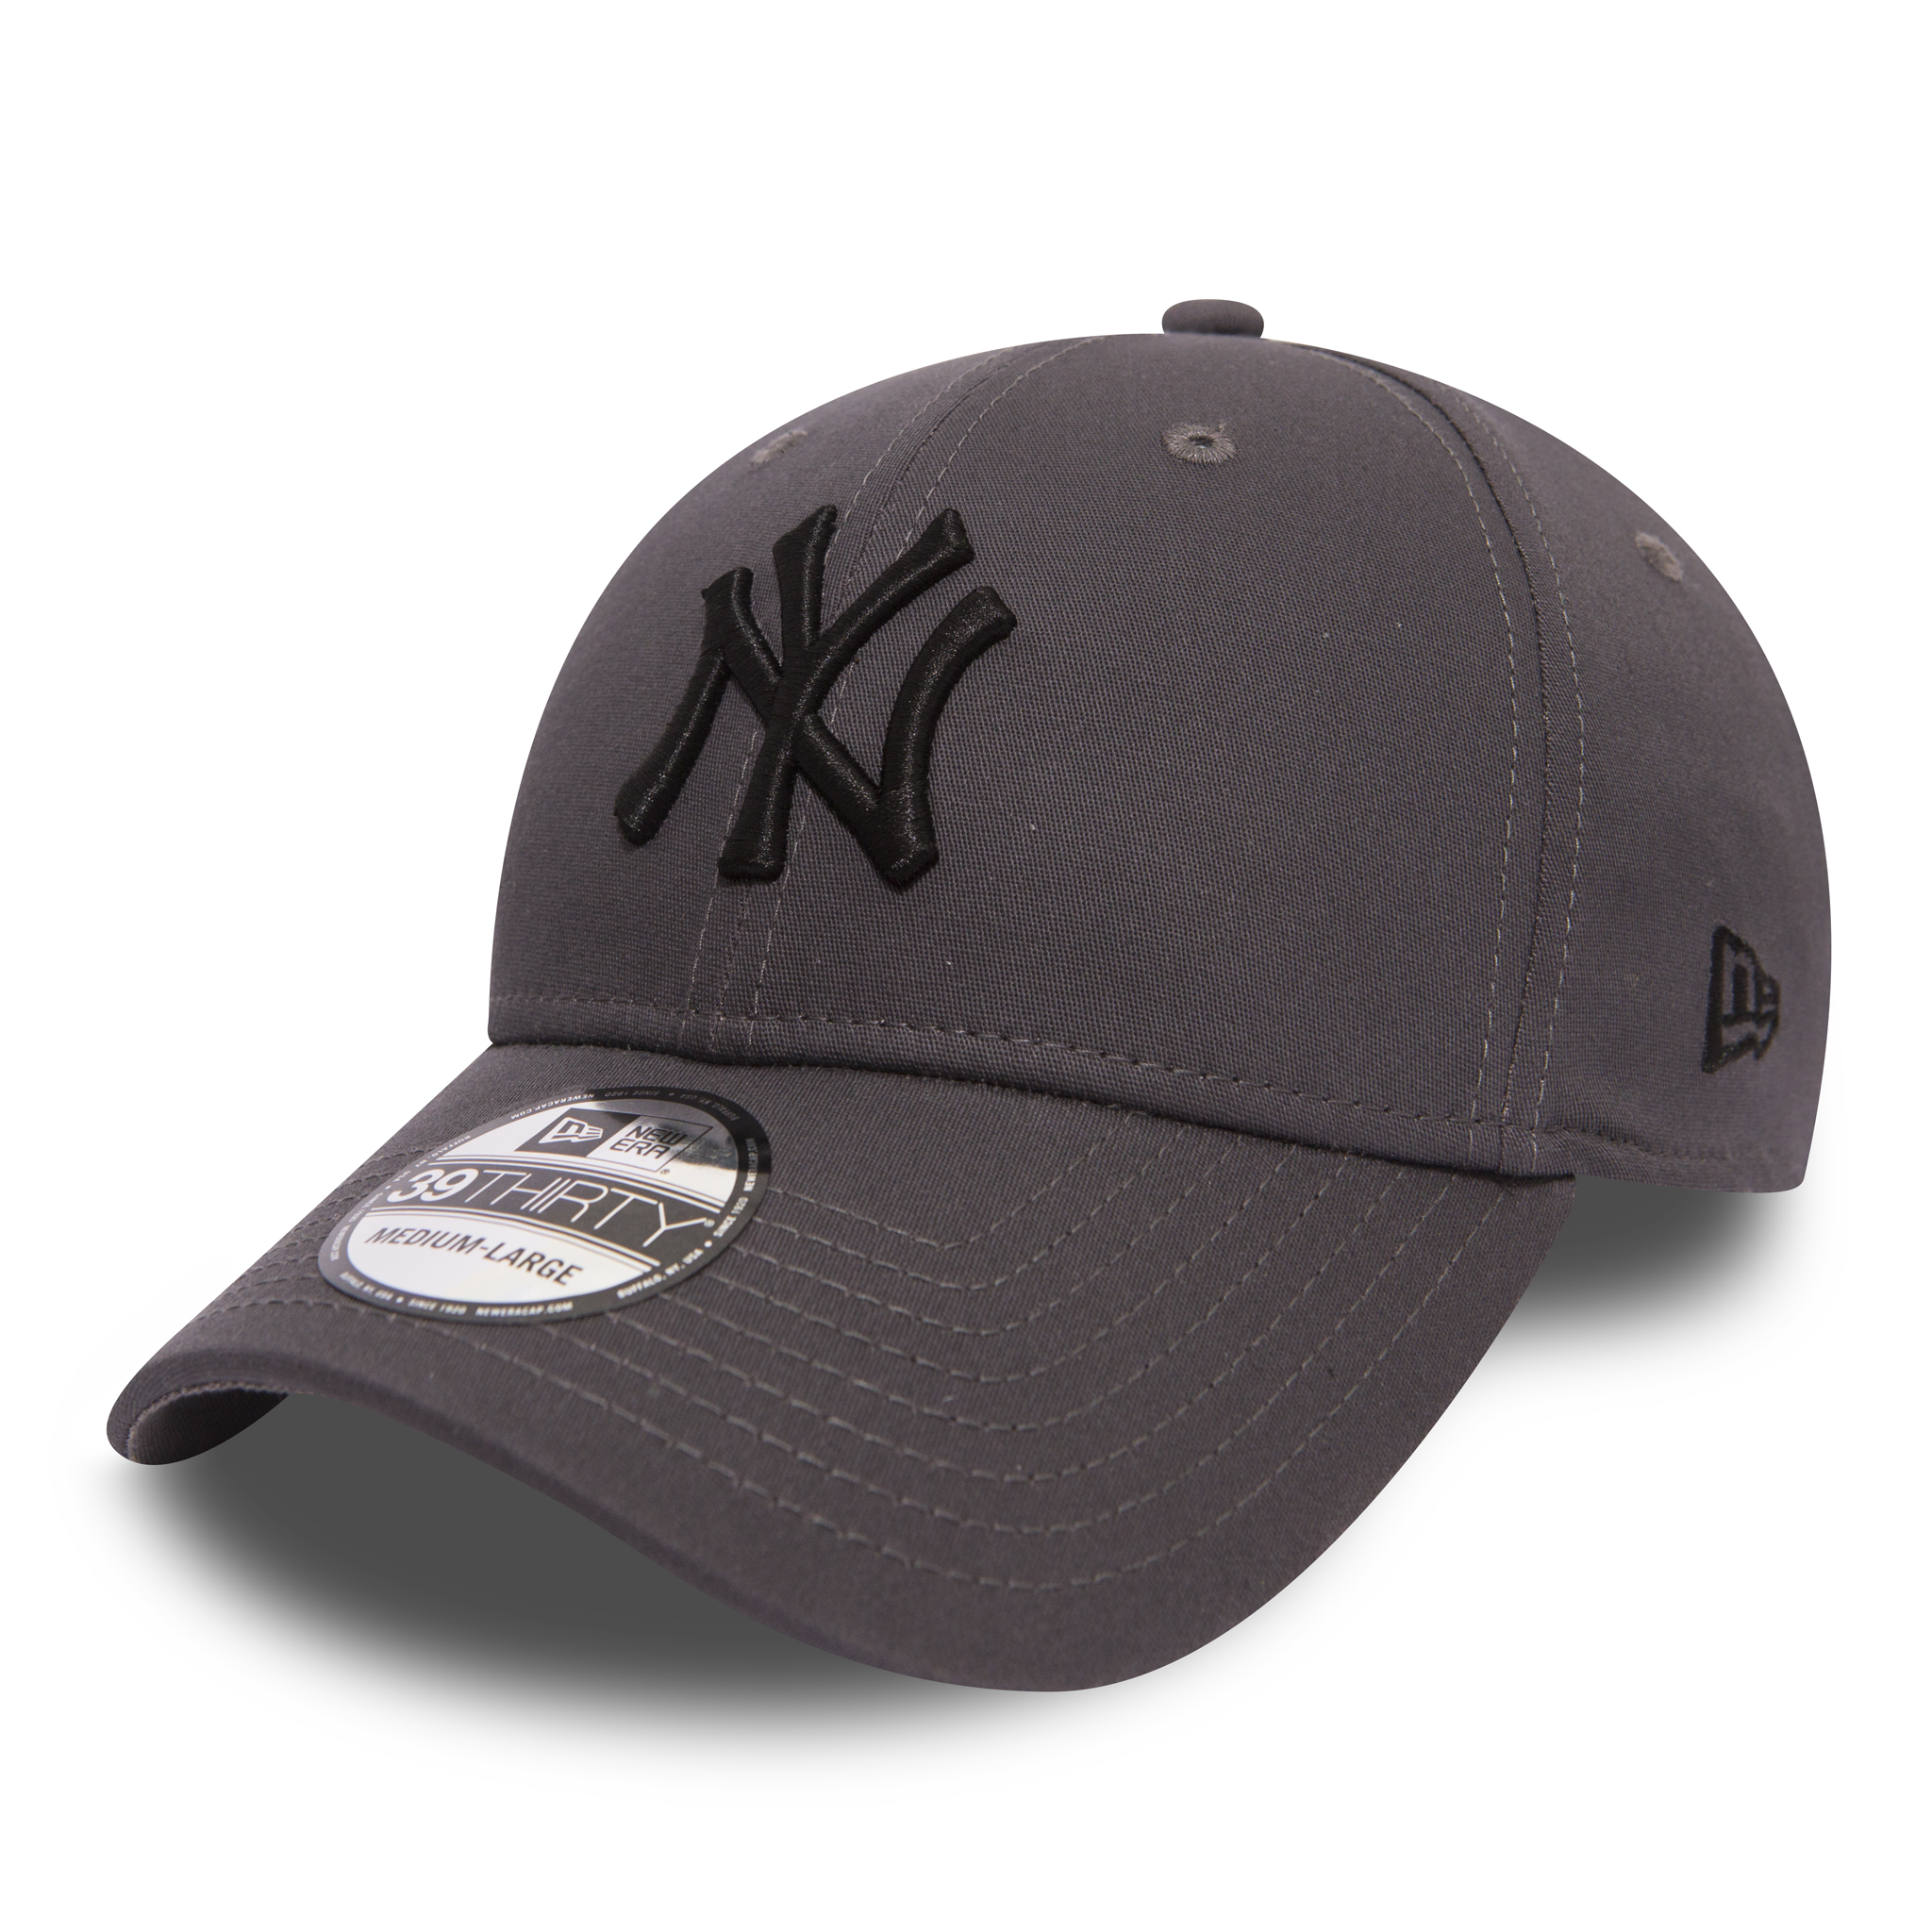 bee74c871b5 Details about New Era MLB League Essential 3930 NY Yankees Cap Graphite  Black